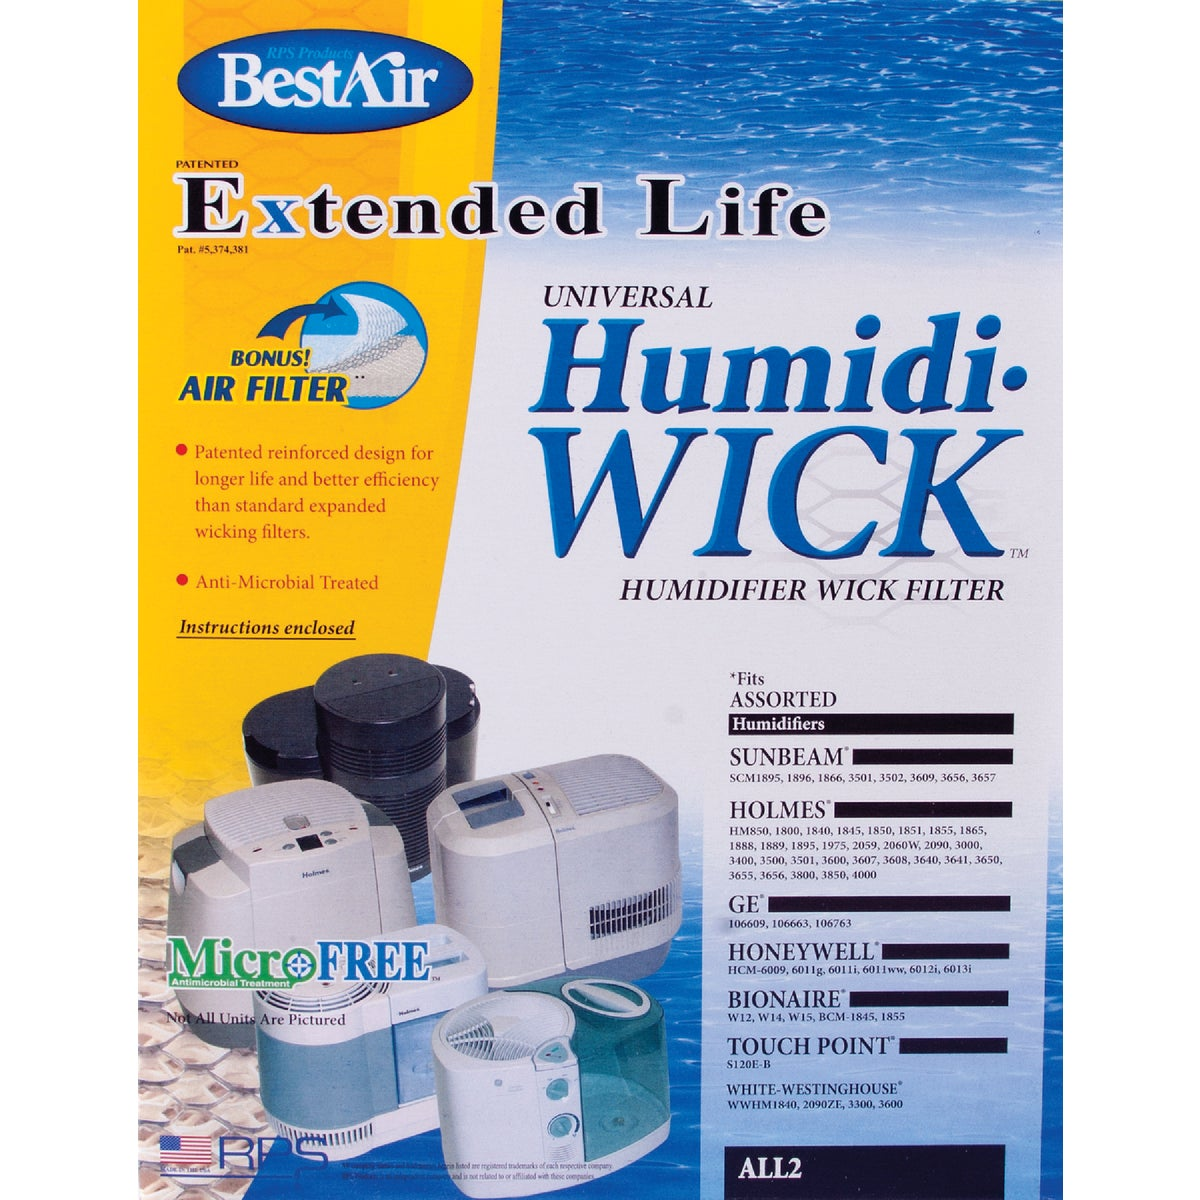 HUMIDIFIER WICK FILTER - ALL-2 by Rps Products Inc